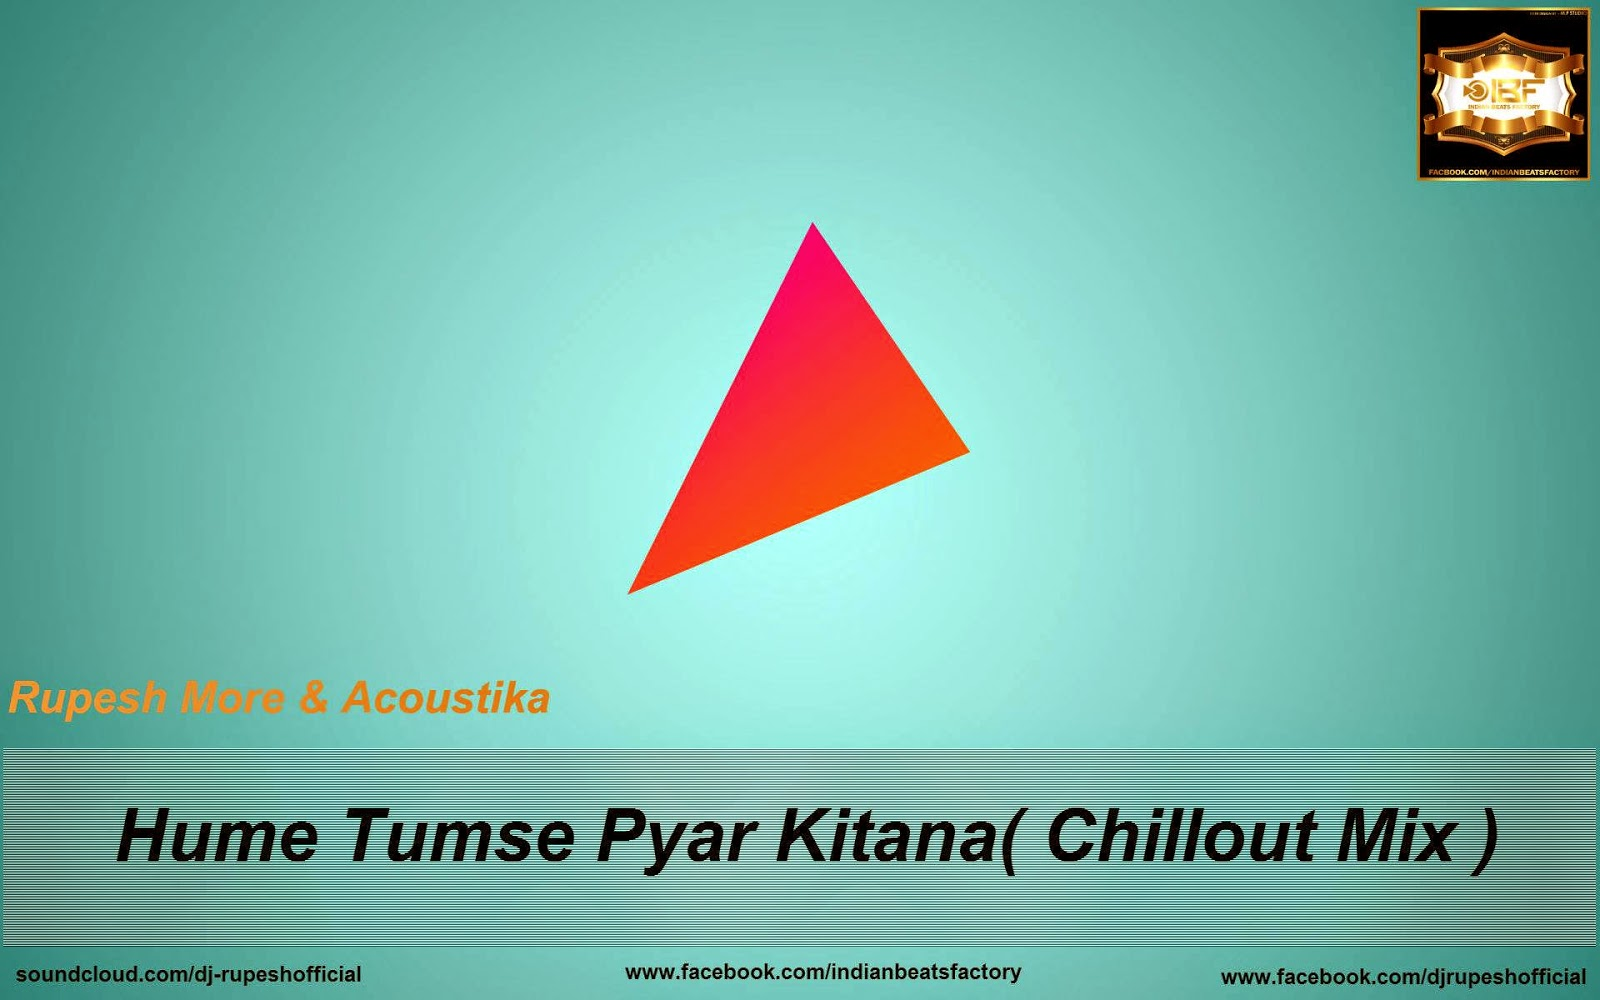 Rupesh More & Acoustika - Hume Tumse Pyar Kitana Chillout Mix .mp3